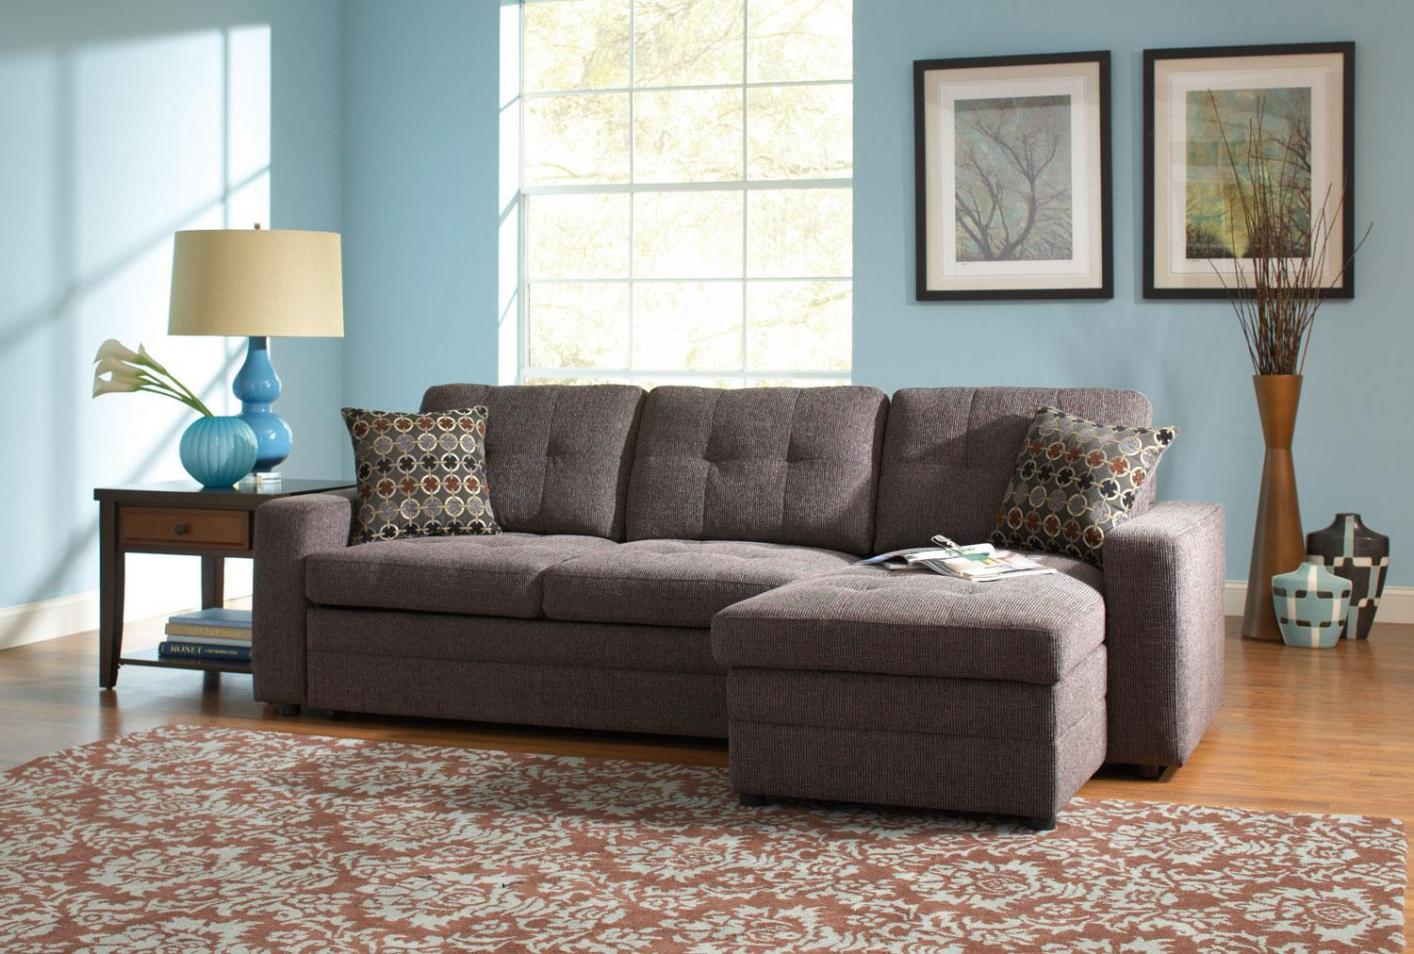 and sleeper with com lovely room inspirational sofa mediasupload foam white leather mattress living of memory wingback sectional